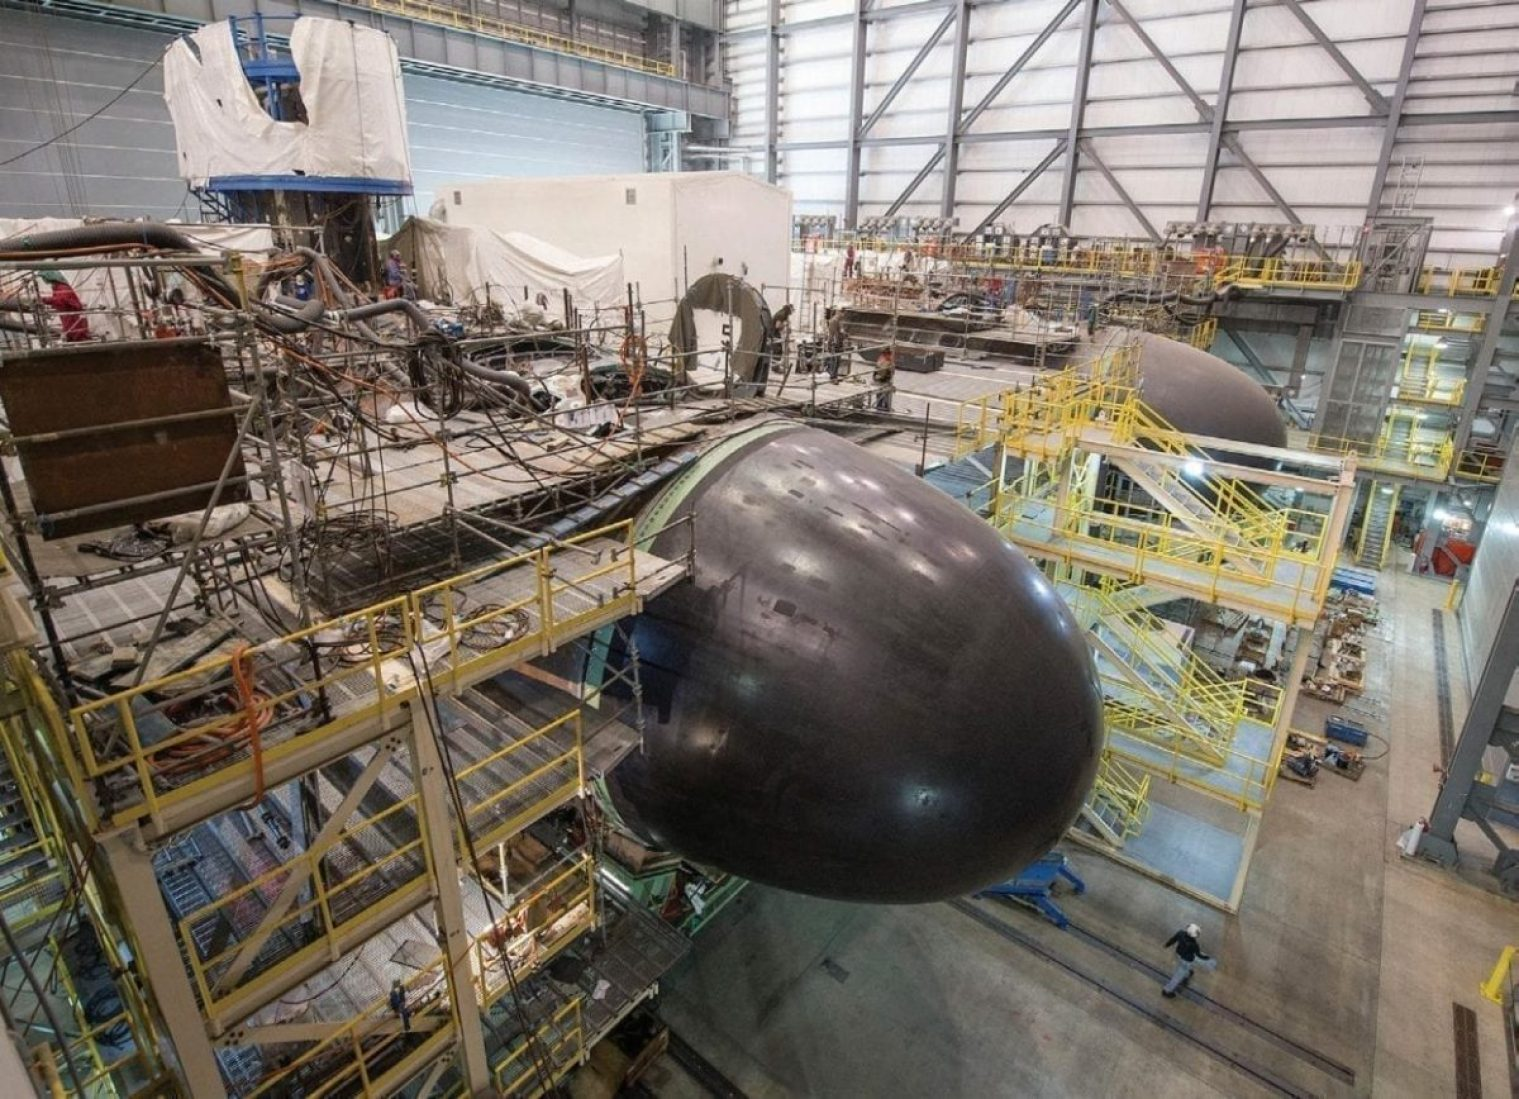 The bow units of Washington (SSN 787) and Colorado (SSN 788) fill one side of the Supplemental Modular Outfitting Facility (SMOF) at Newport News Shipbuilding. Huntington Ingalls Industries' Newport News Shipbuilding and General Dynamics Electric Boat have been sharing in the construction of the Virginia-class submarines.